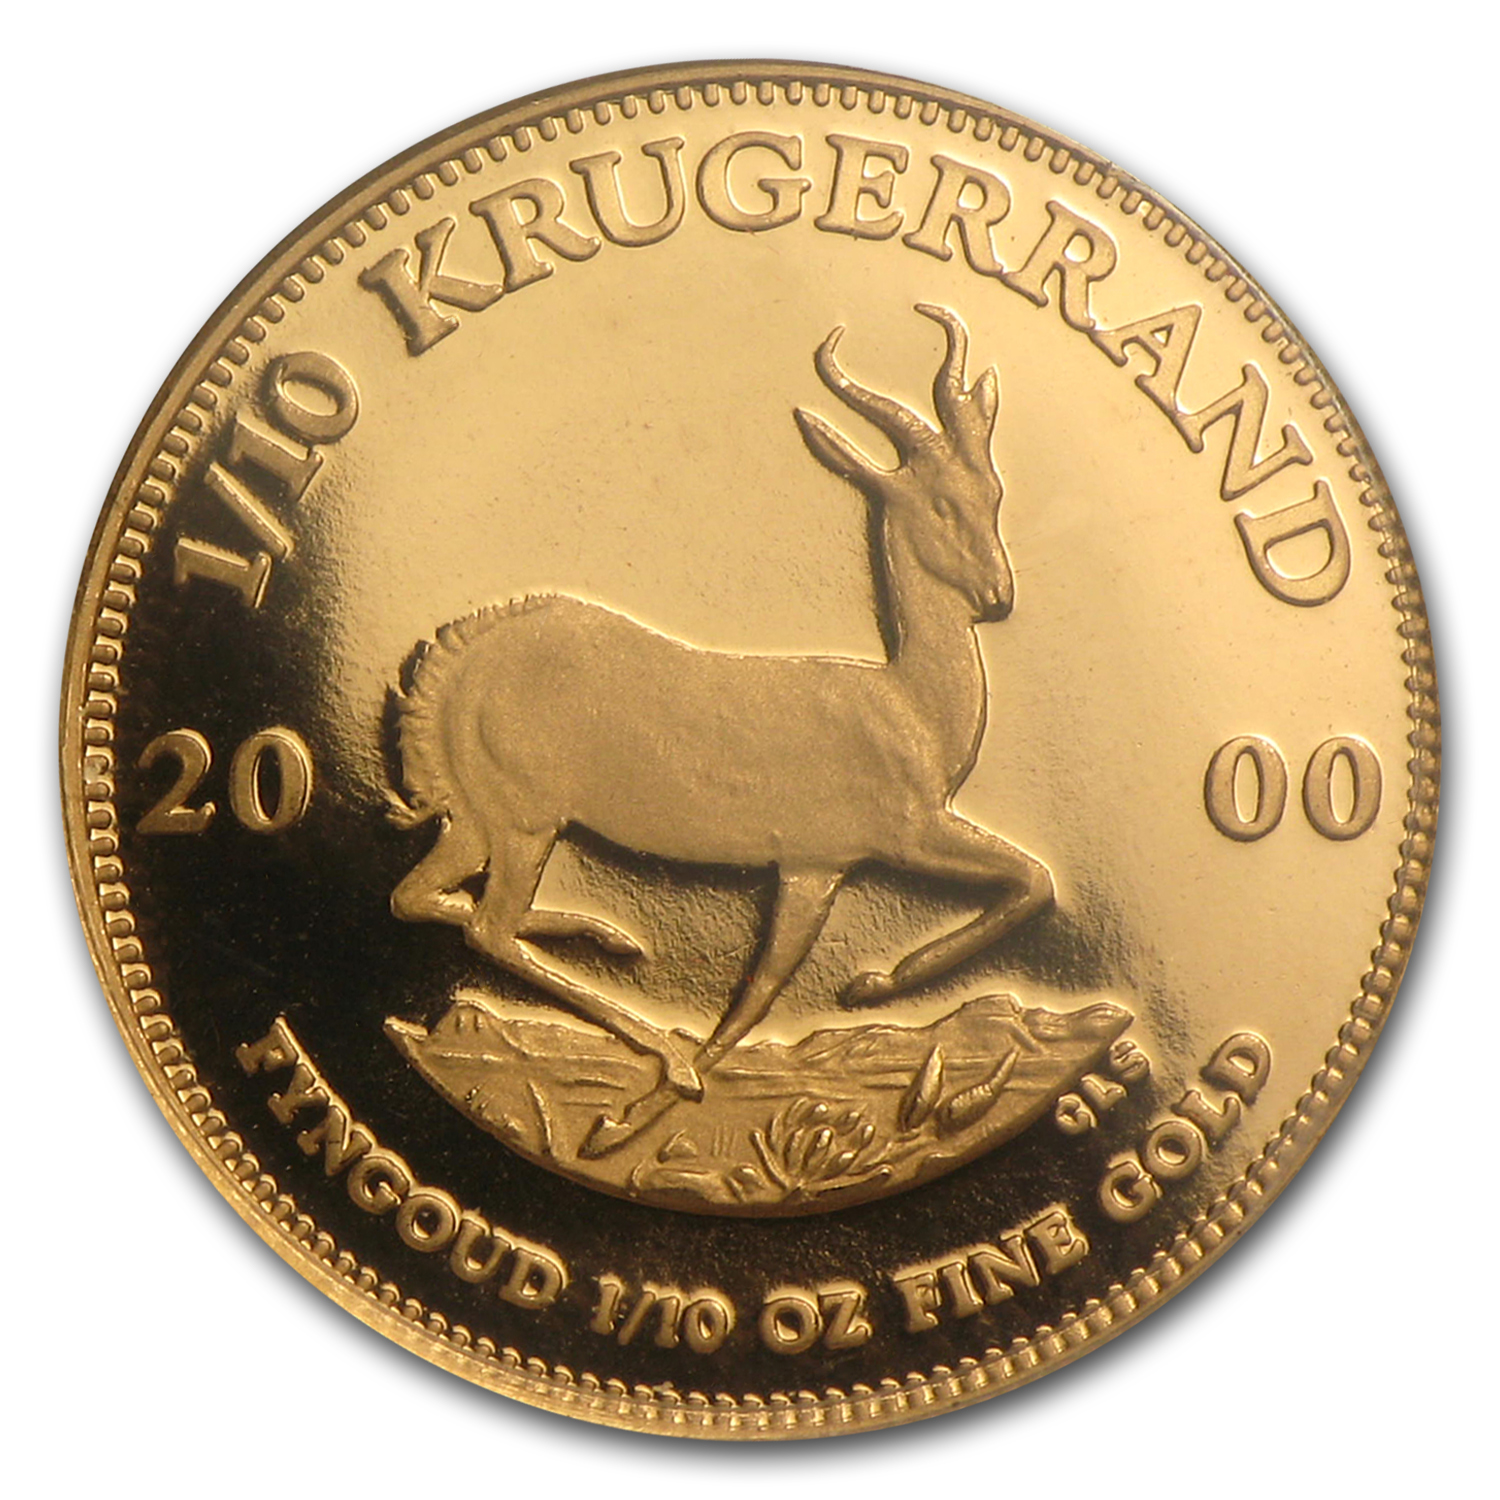 2000 South Africa 1/10 oz Proof Gold Krugerrand